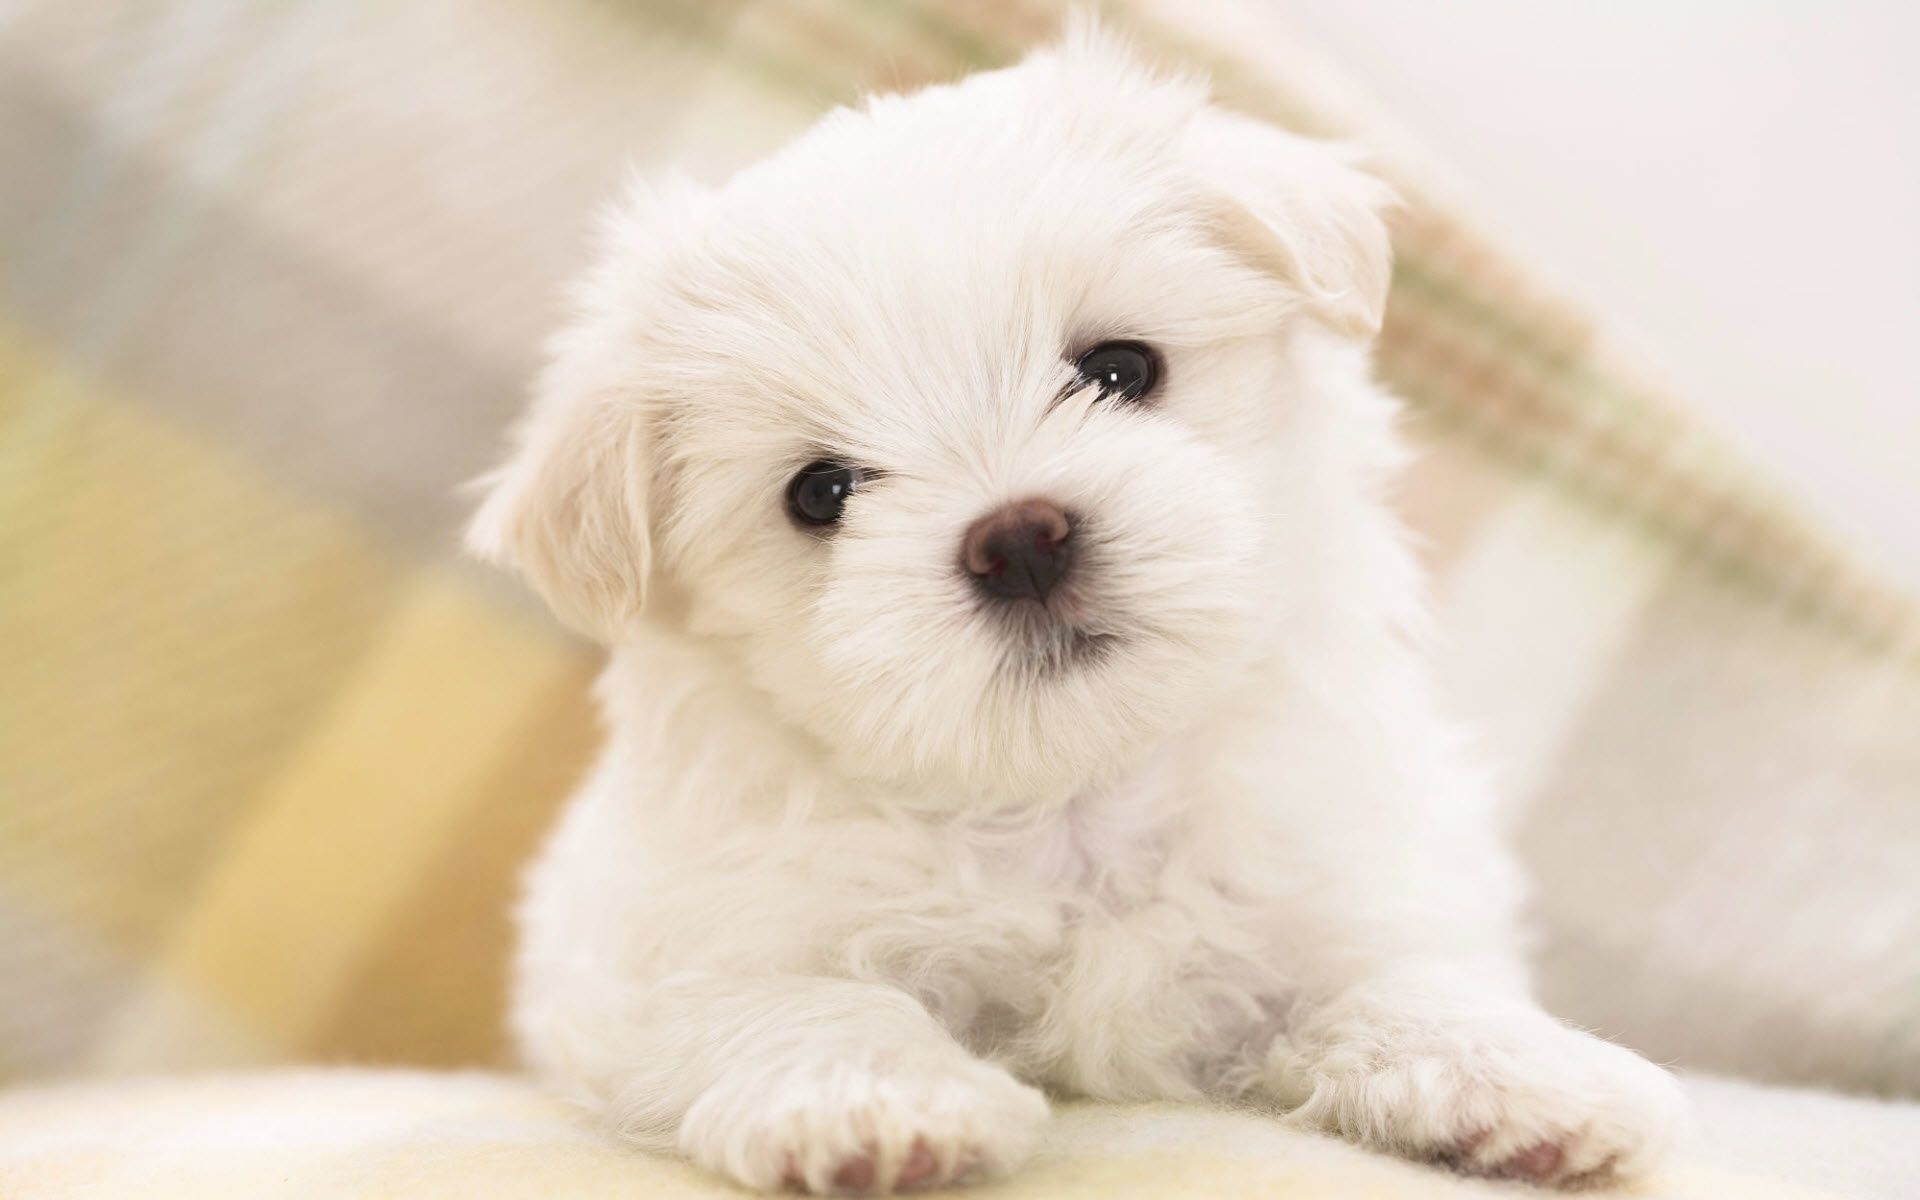 Puppy Wallpapers Free by